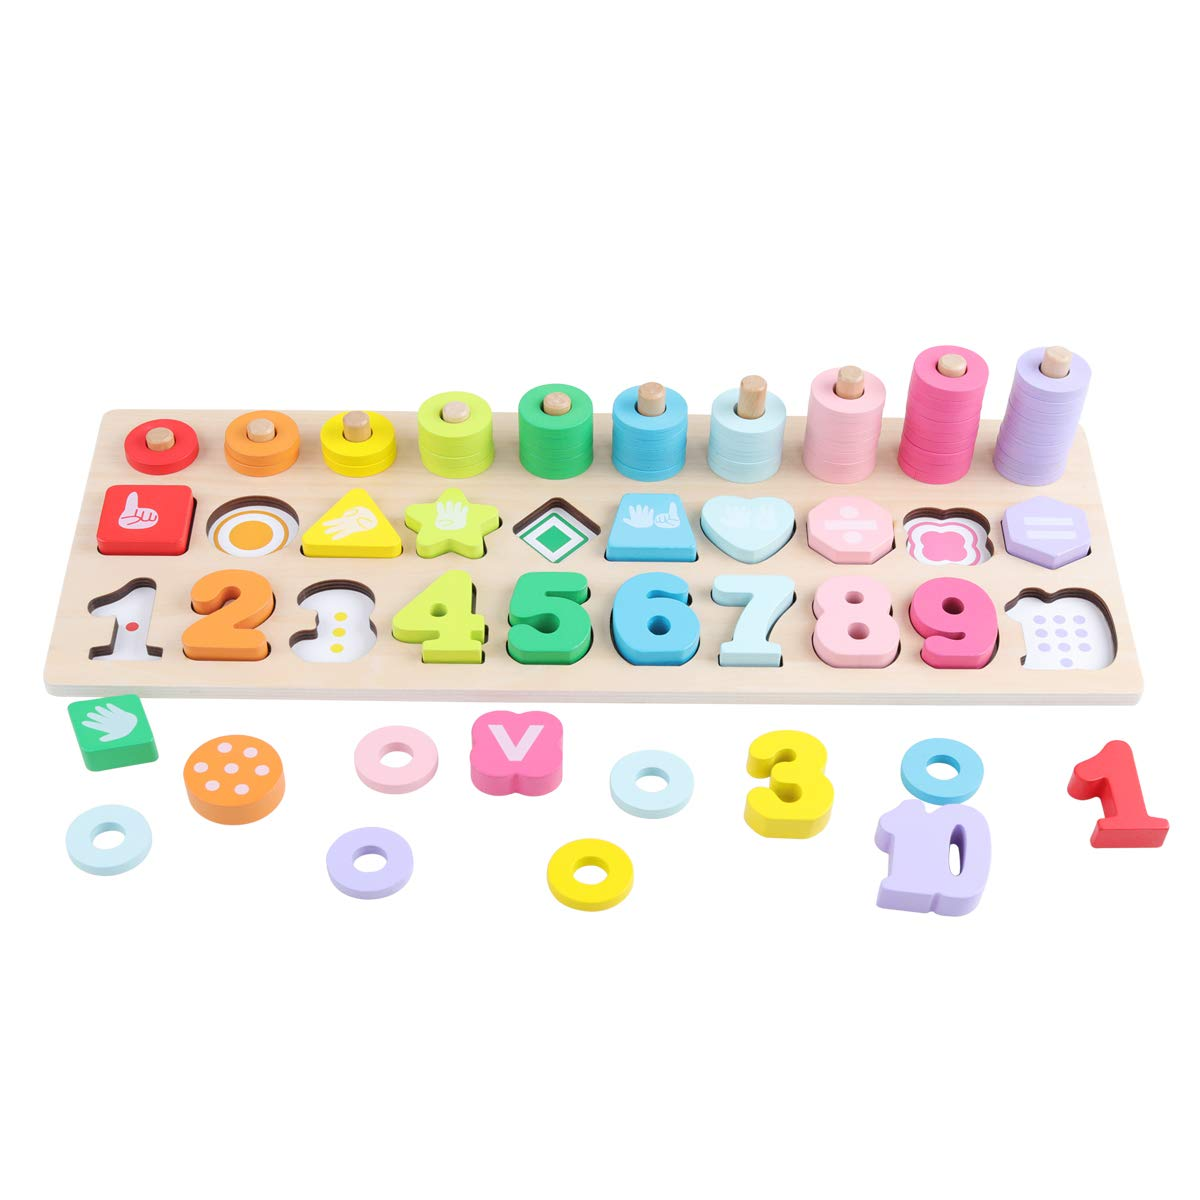 GEMEM Big Wooden Number Puzzle Sorting Montessori Toys for Toddlers Shape Sorter Counting Games for Kids 3 4 5 Year Olds Preschool Early Learning Educational Children Toy